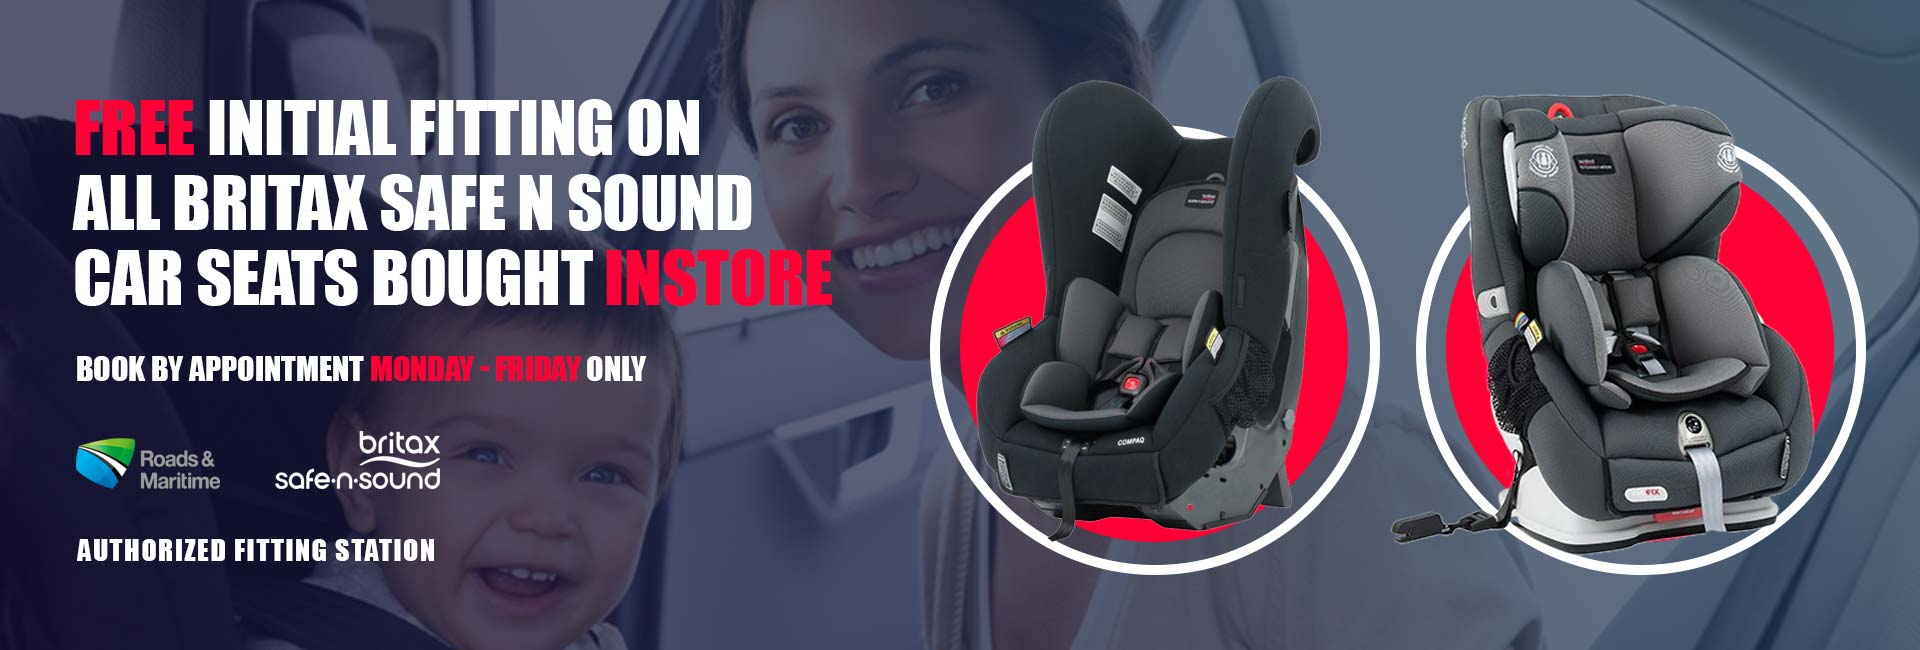 free fitting all britax safe n sound car seats bought instore only